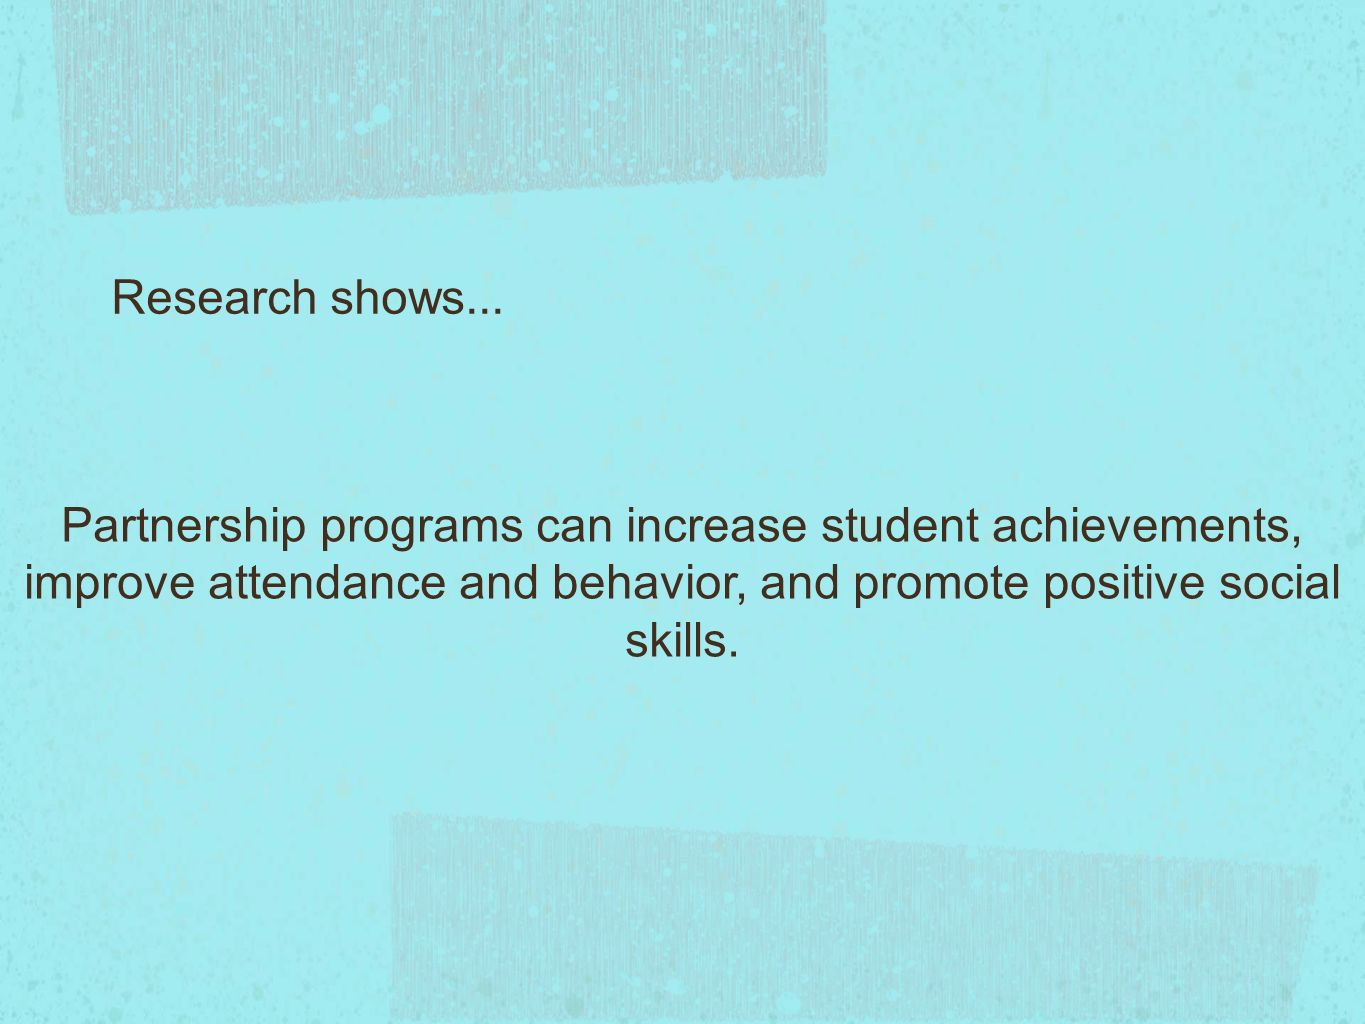 Partnership programs can increase student achievements, improve attendance and behavior, and promote positive social skills.